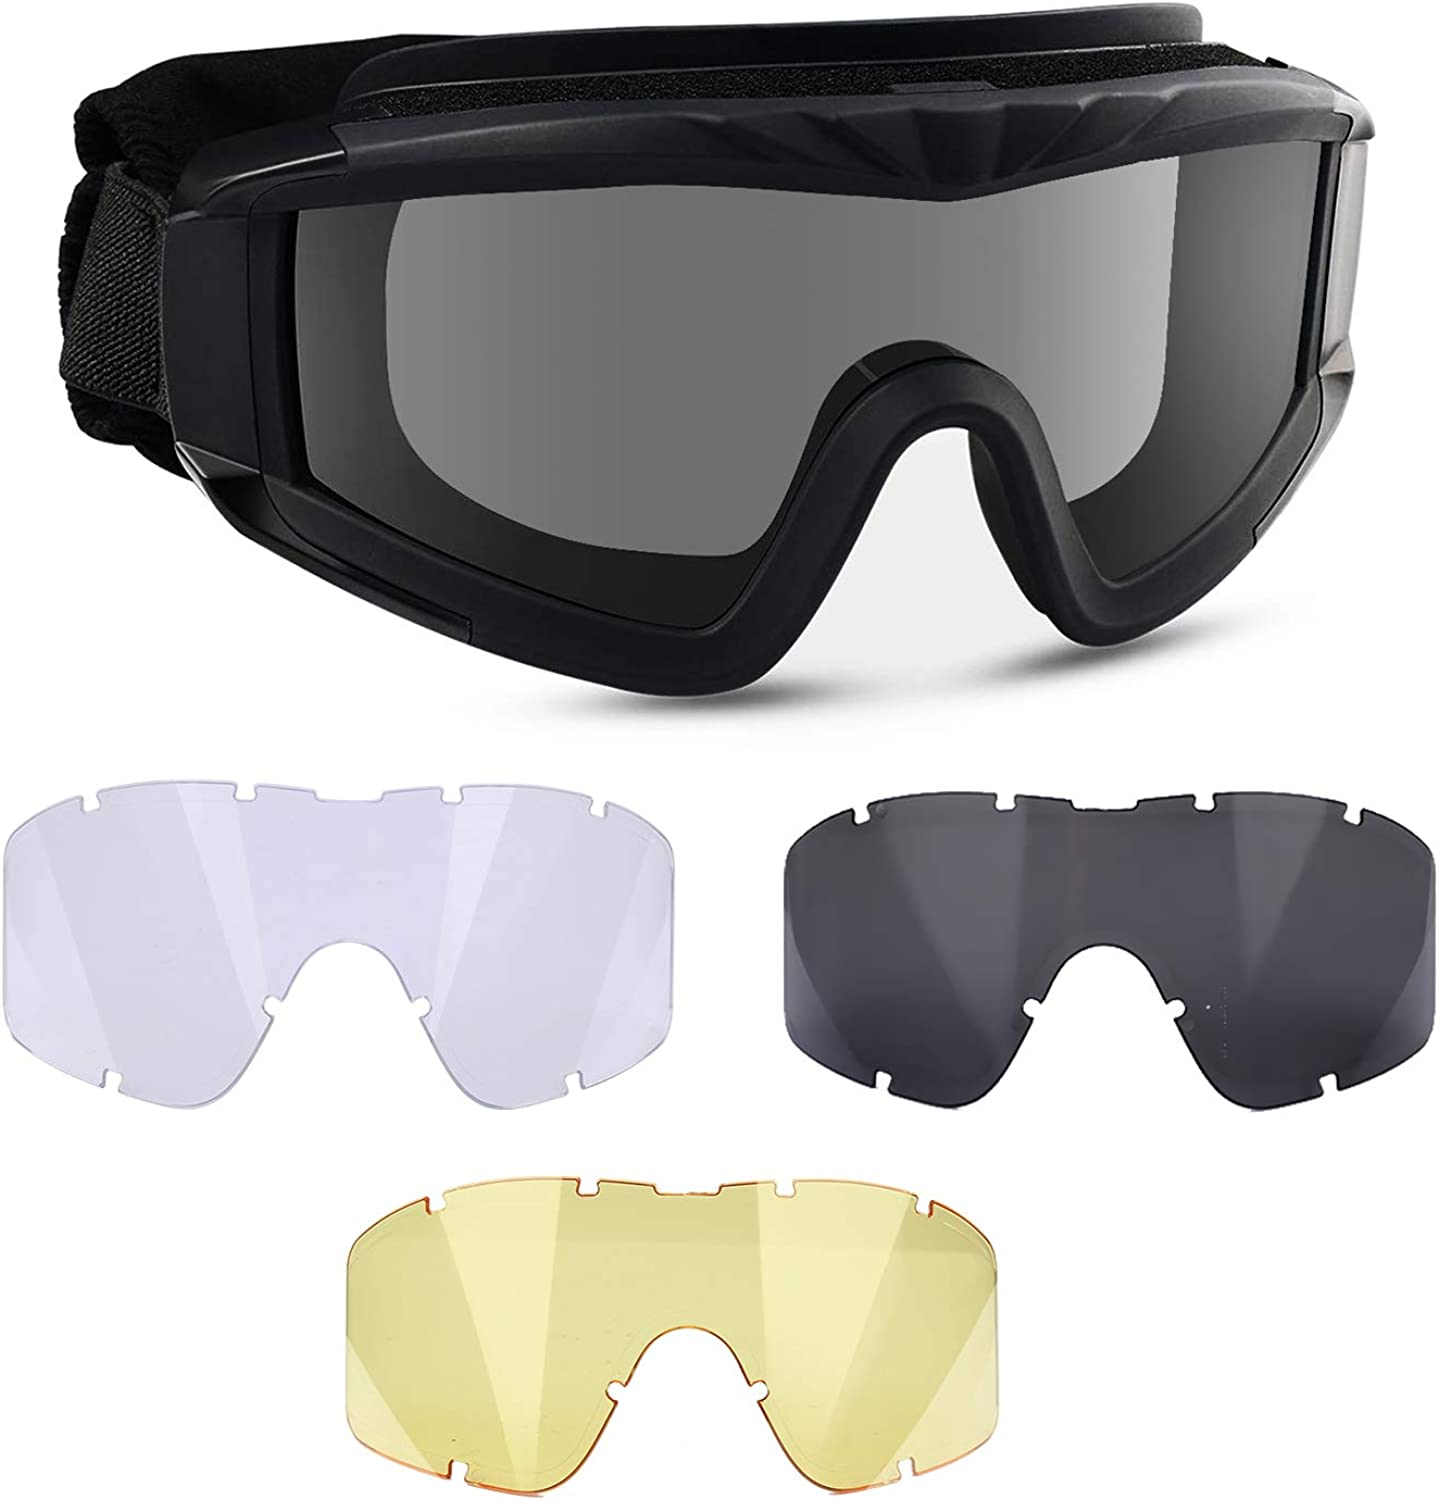 Flantor Airsoft Indianapolis Mall Goggles -Outdoor Safety Tactical Finally popular brand Fo Anti